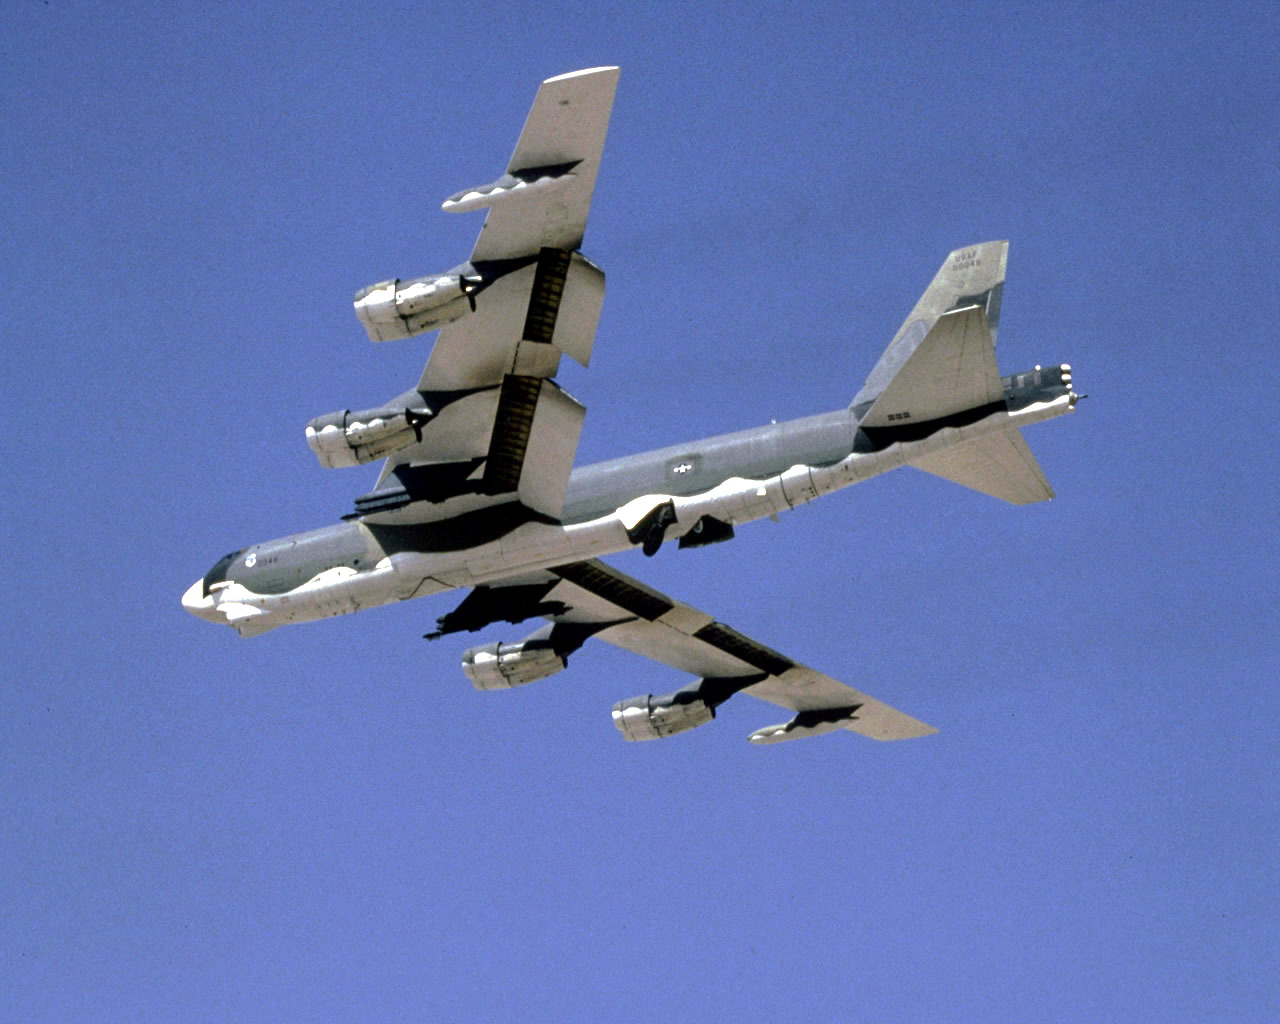 B-52 - the largest bomb airforce plane